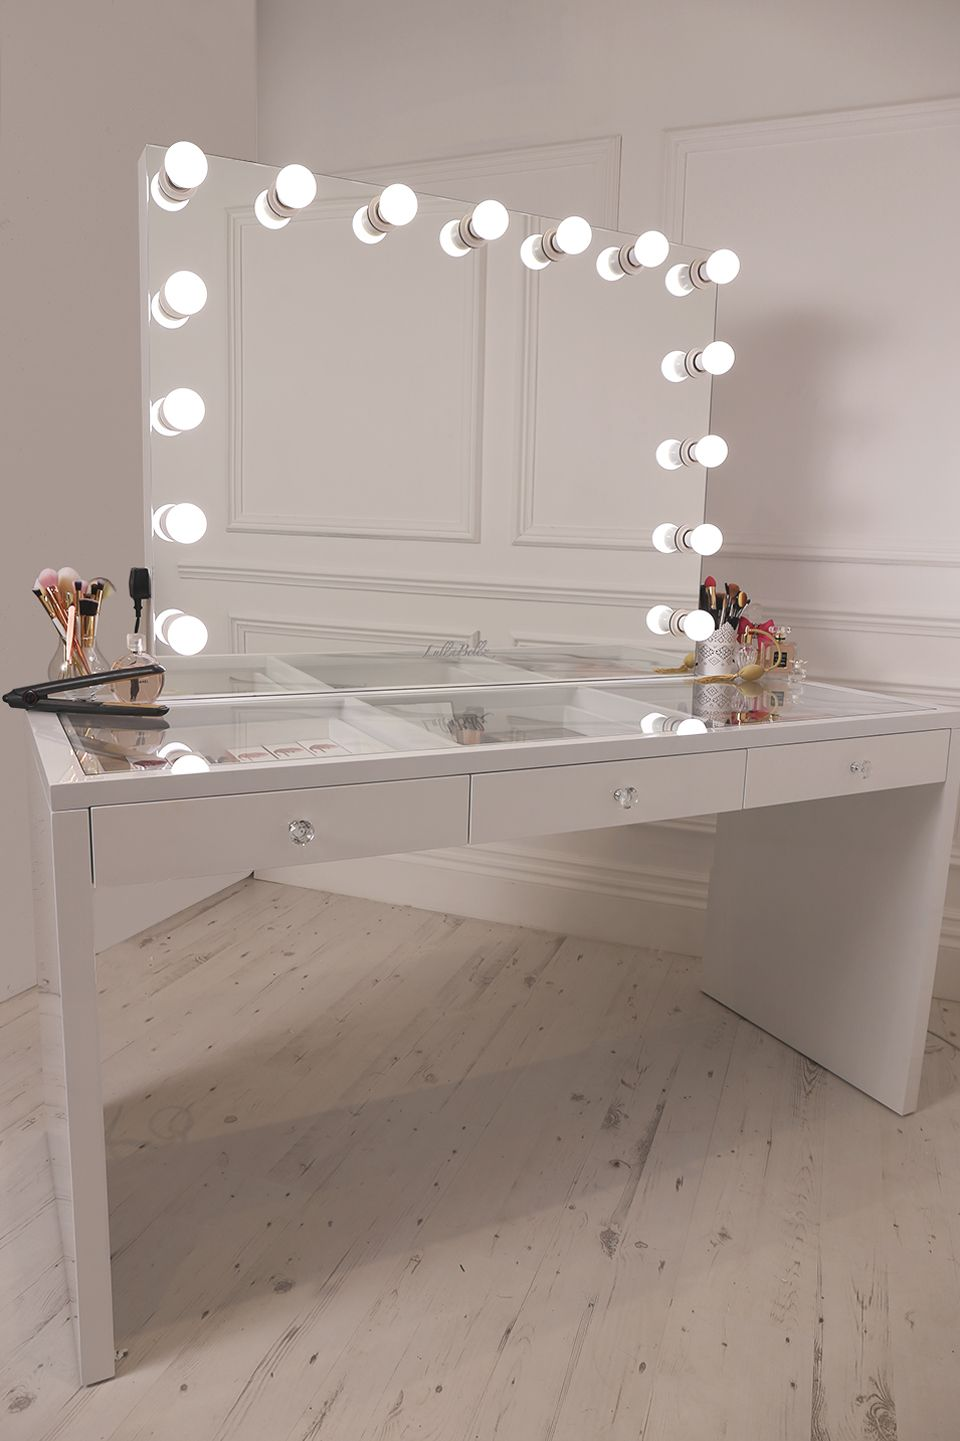 Glass Makeup Vanity With Lights : crisp white finish Slaystation make up vanity with premium storage, three spacious drawers ...